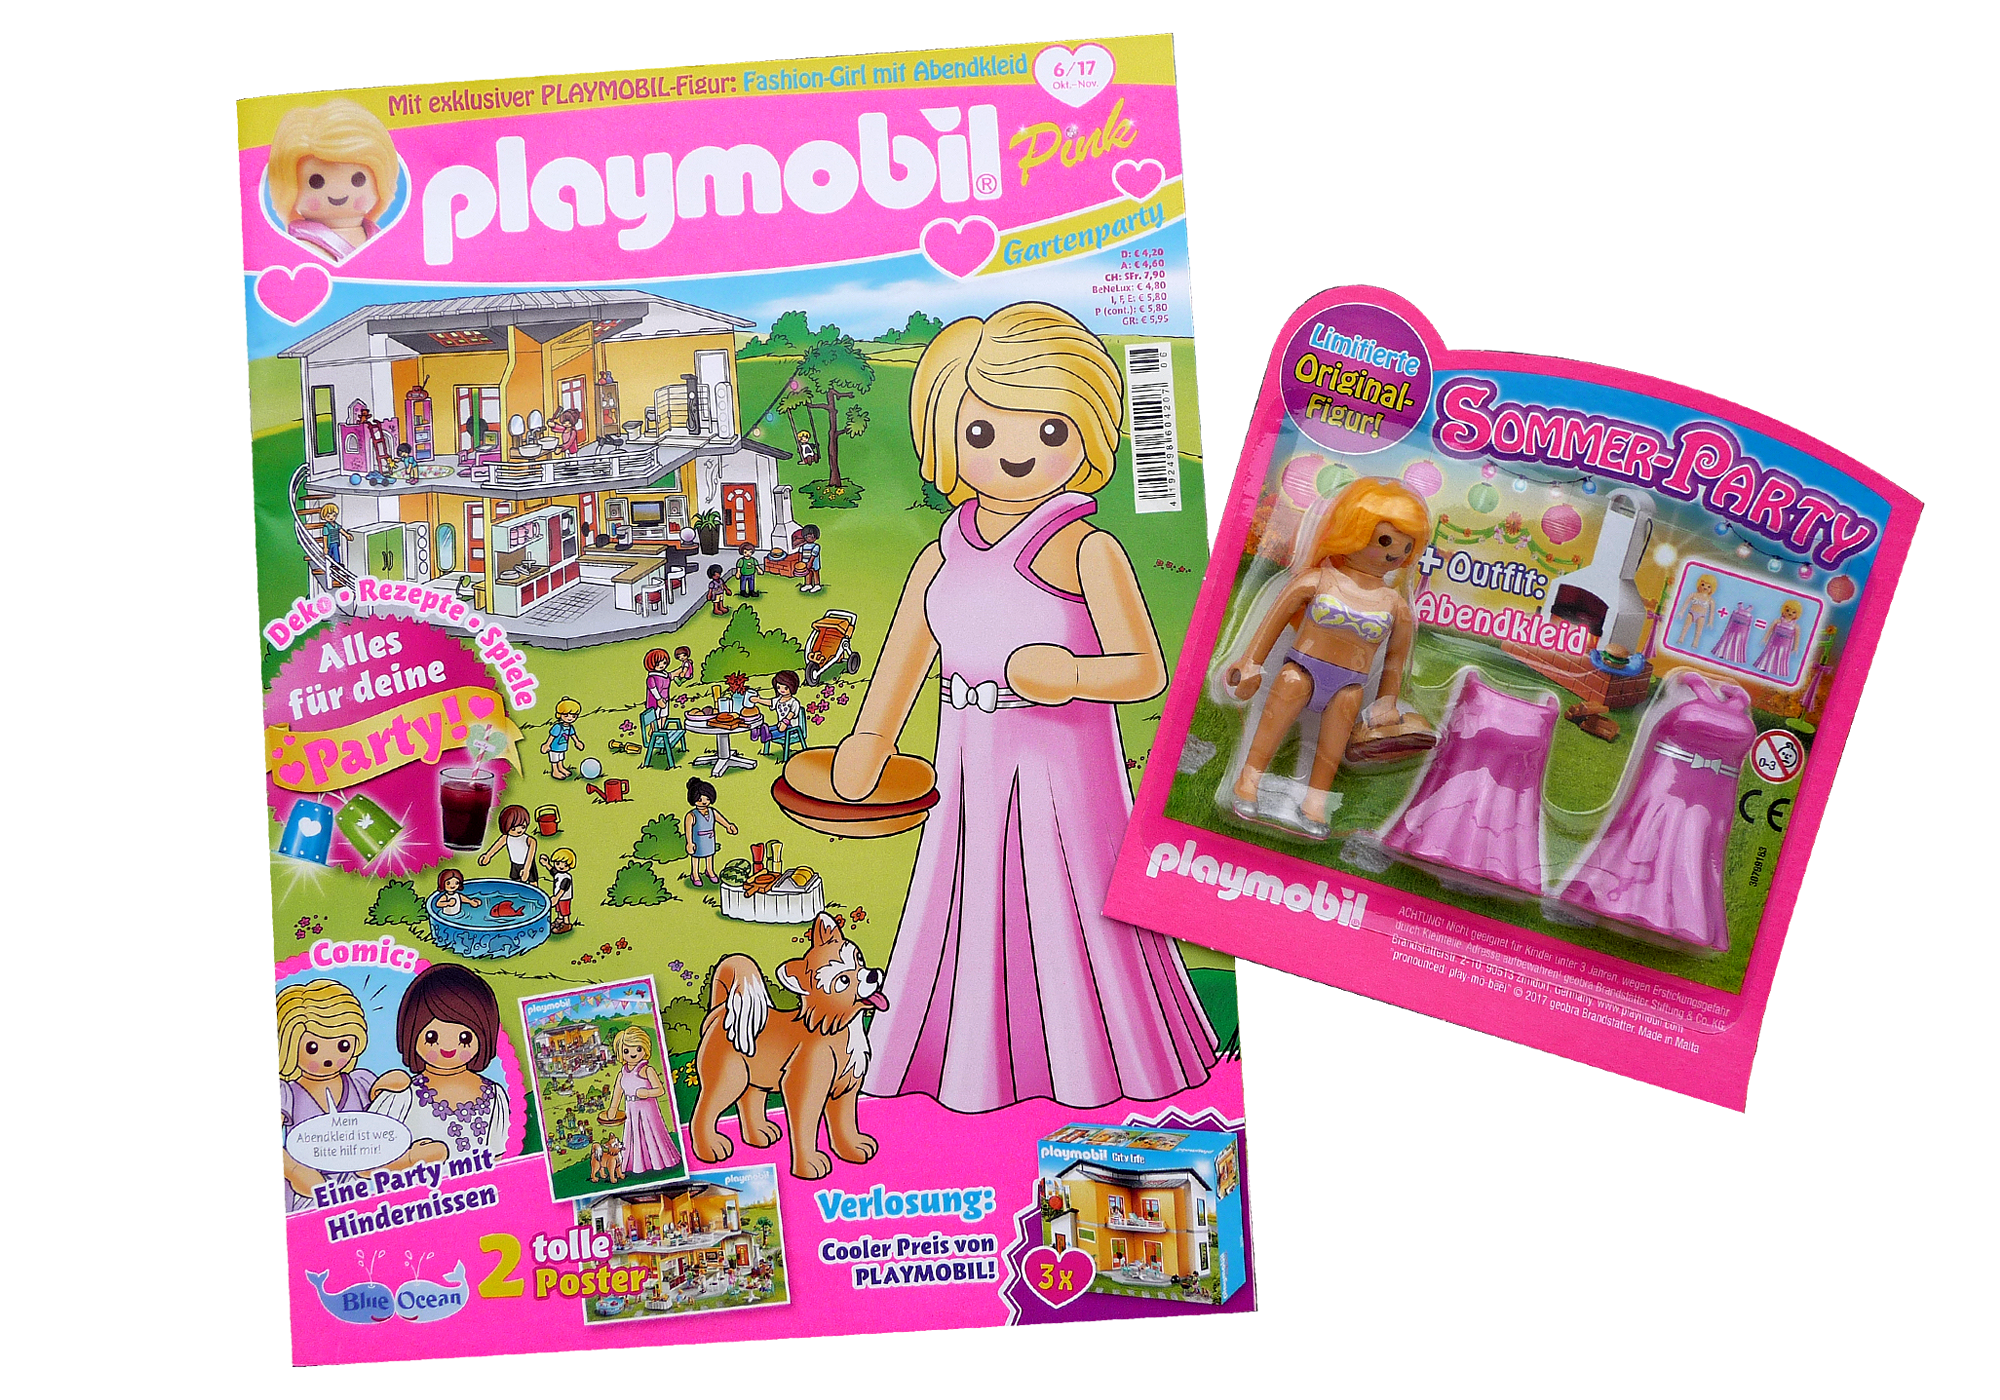 http://media.playmobil.com/i/playmobil/80596_product_detail/PLAYMOBIL-Magazin Pink 6/2017 (Heft 31)